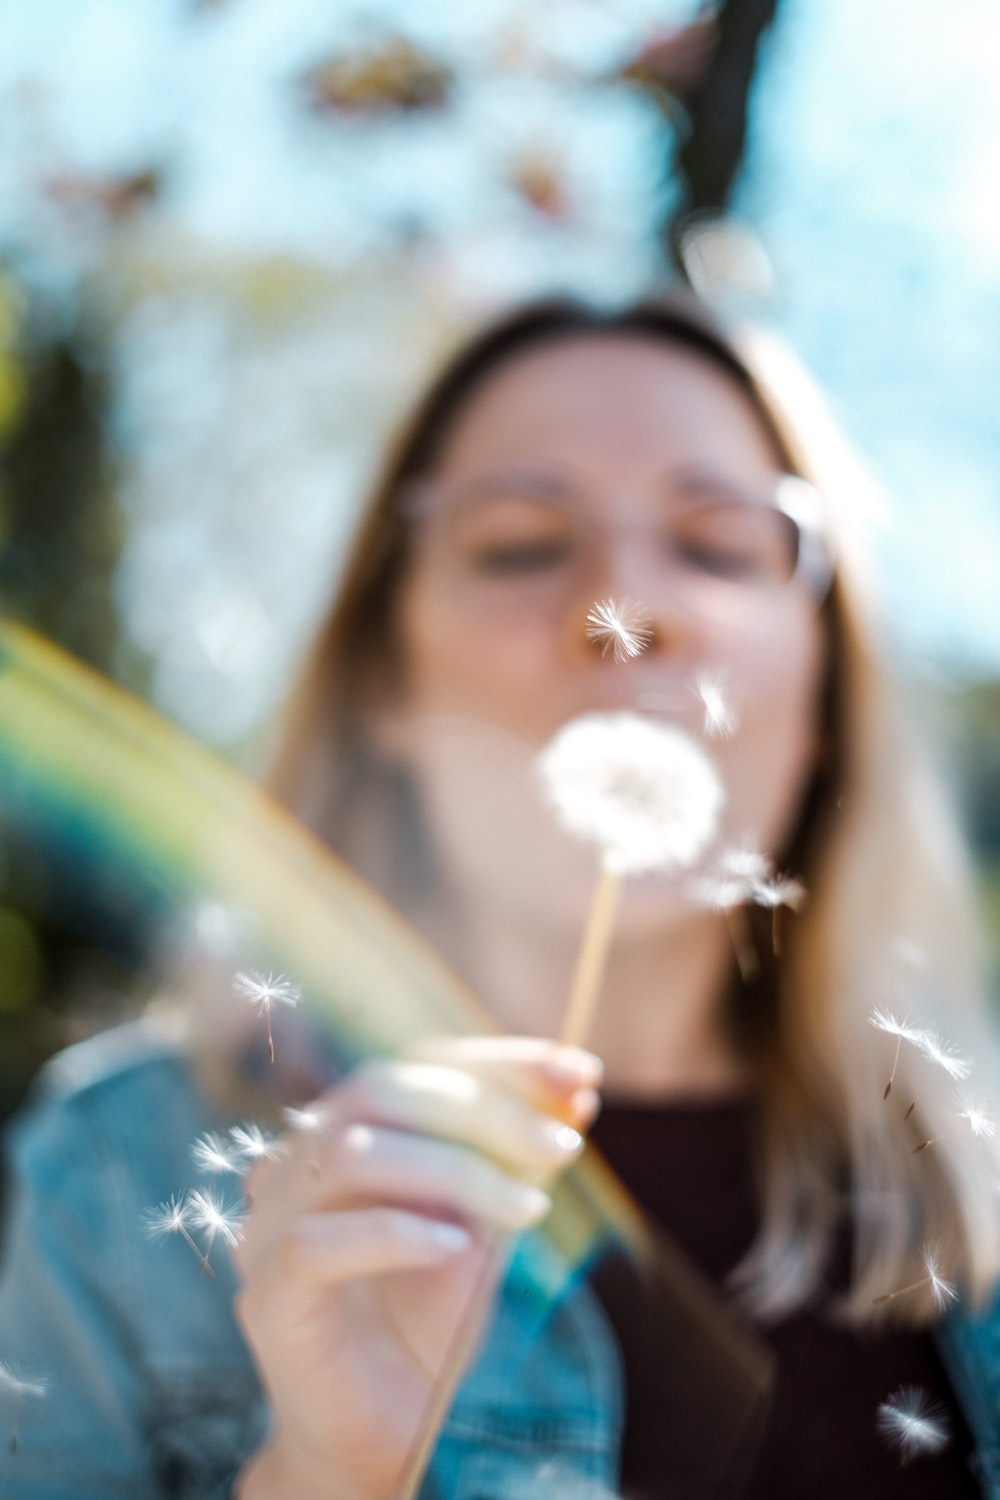 woman blowing white flower